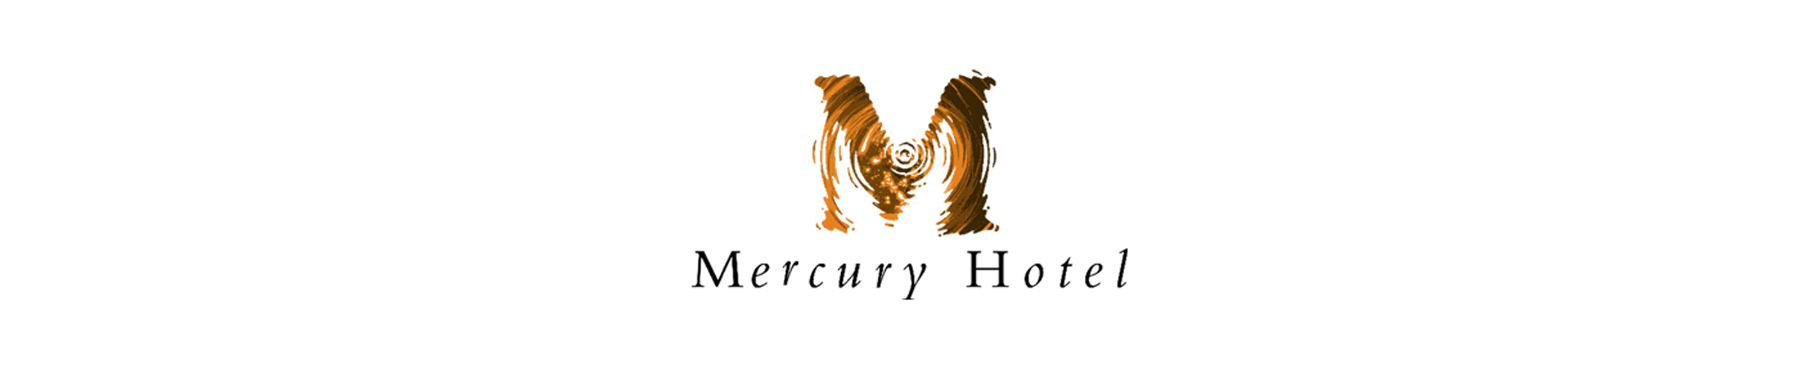 Mercury Hotel banner on white background